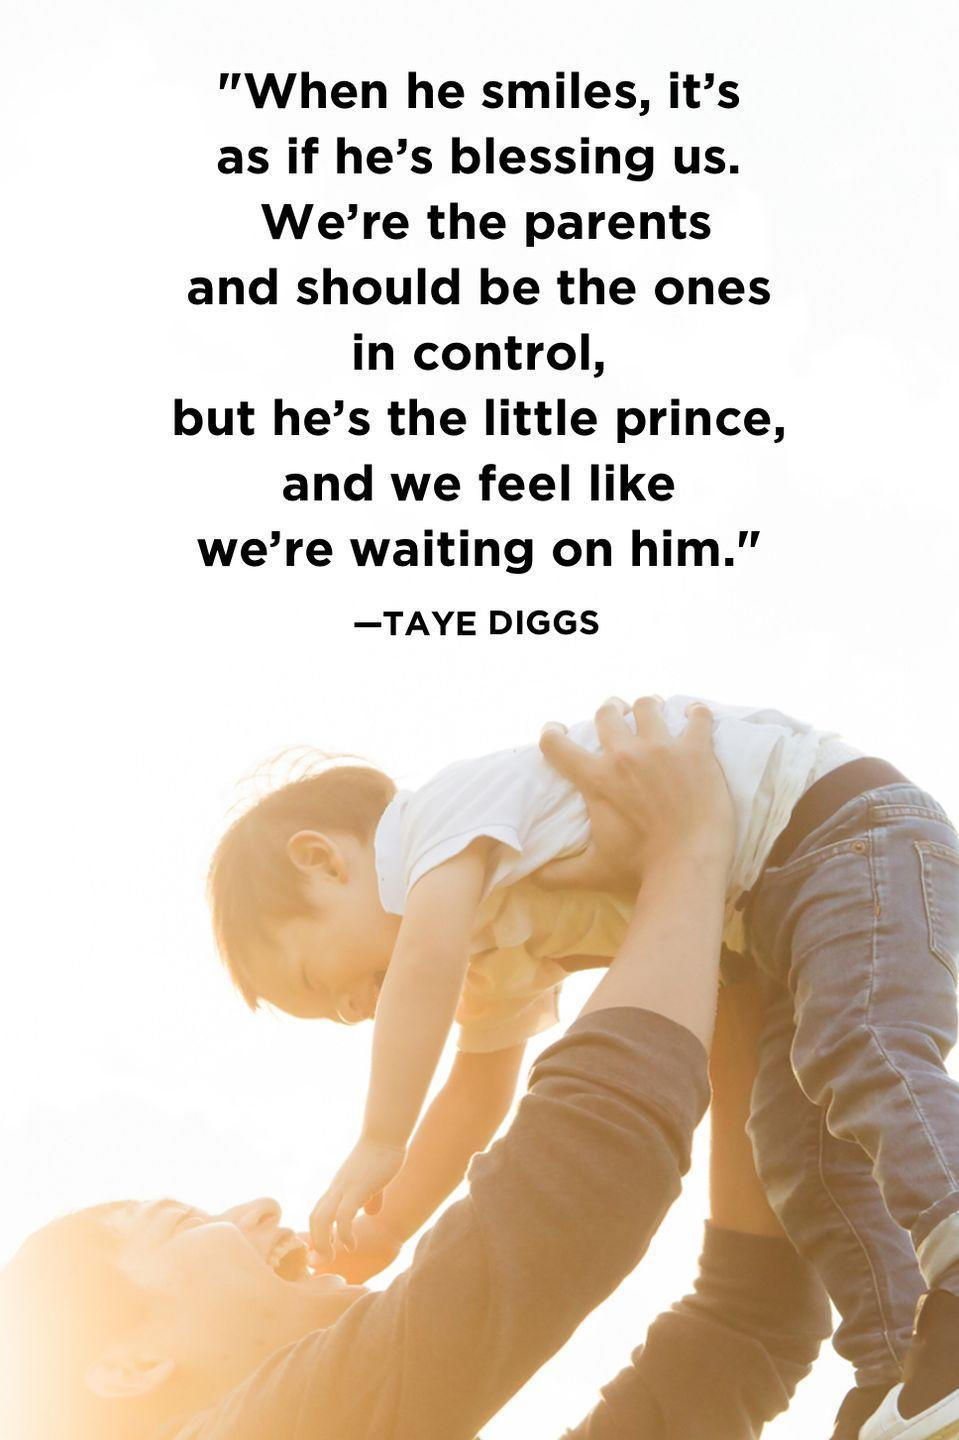 """<p>""""When he smiles, it's as if he's blessing us. We're the parents and should be the ones in control, but he's the little prince, and we feel like we're waiting on him.""""</p>"""